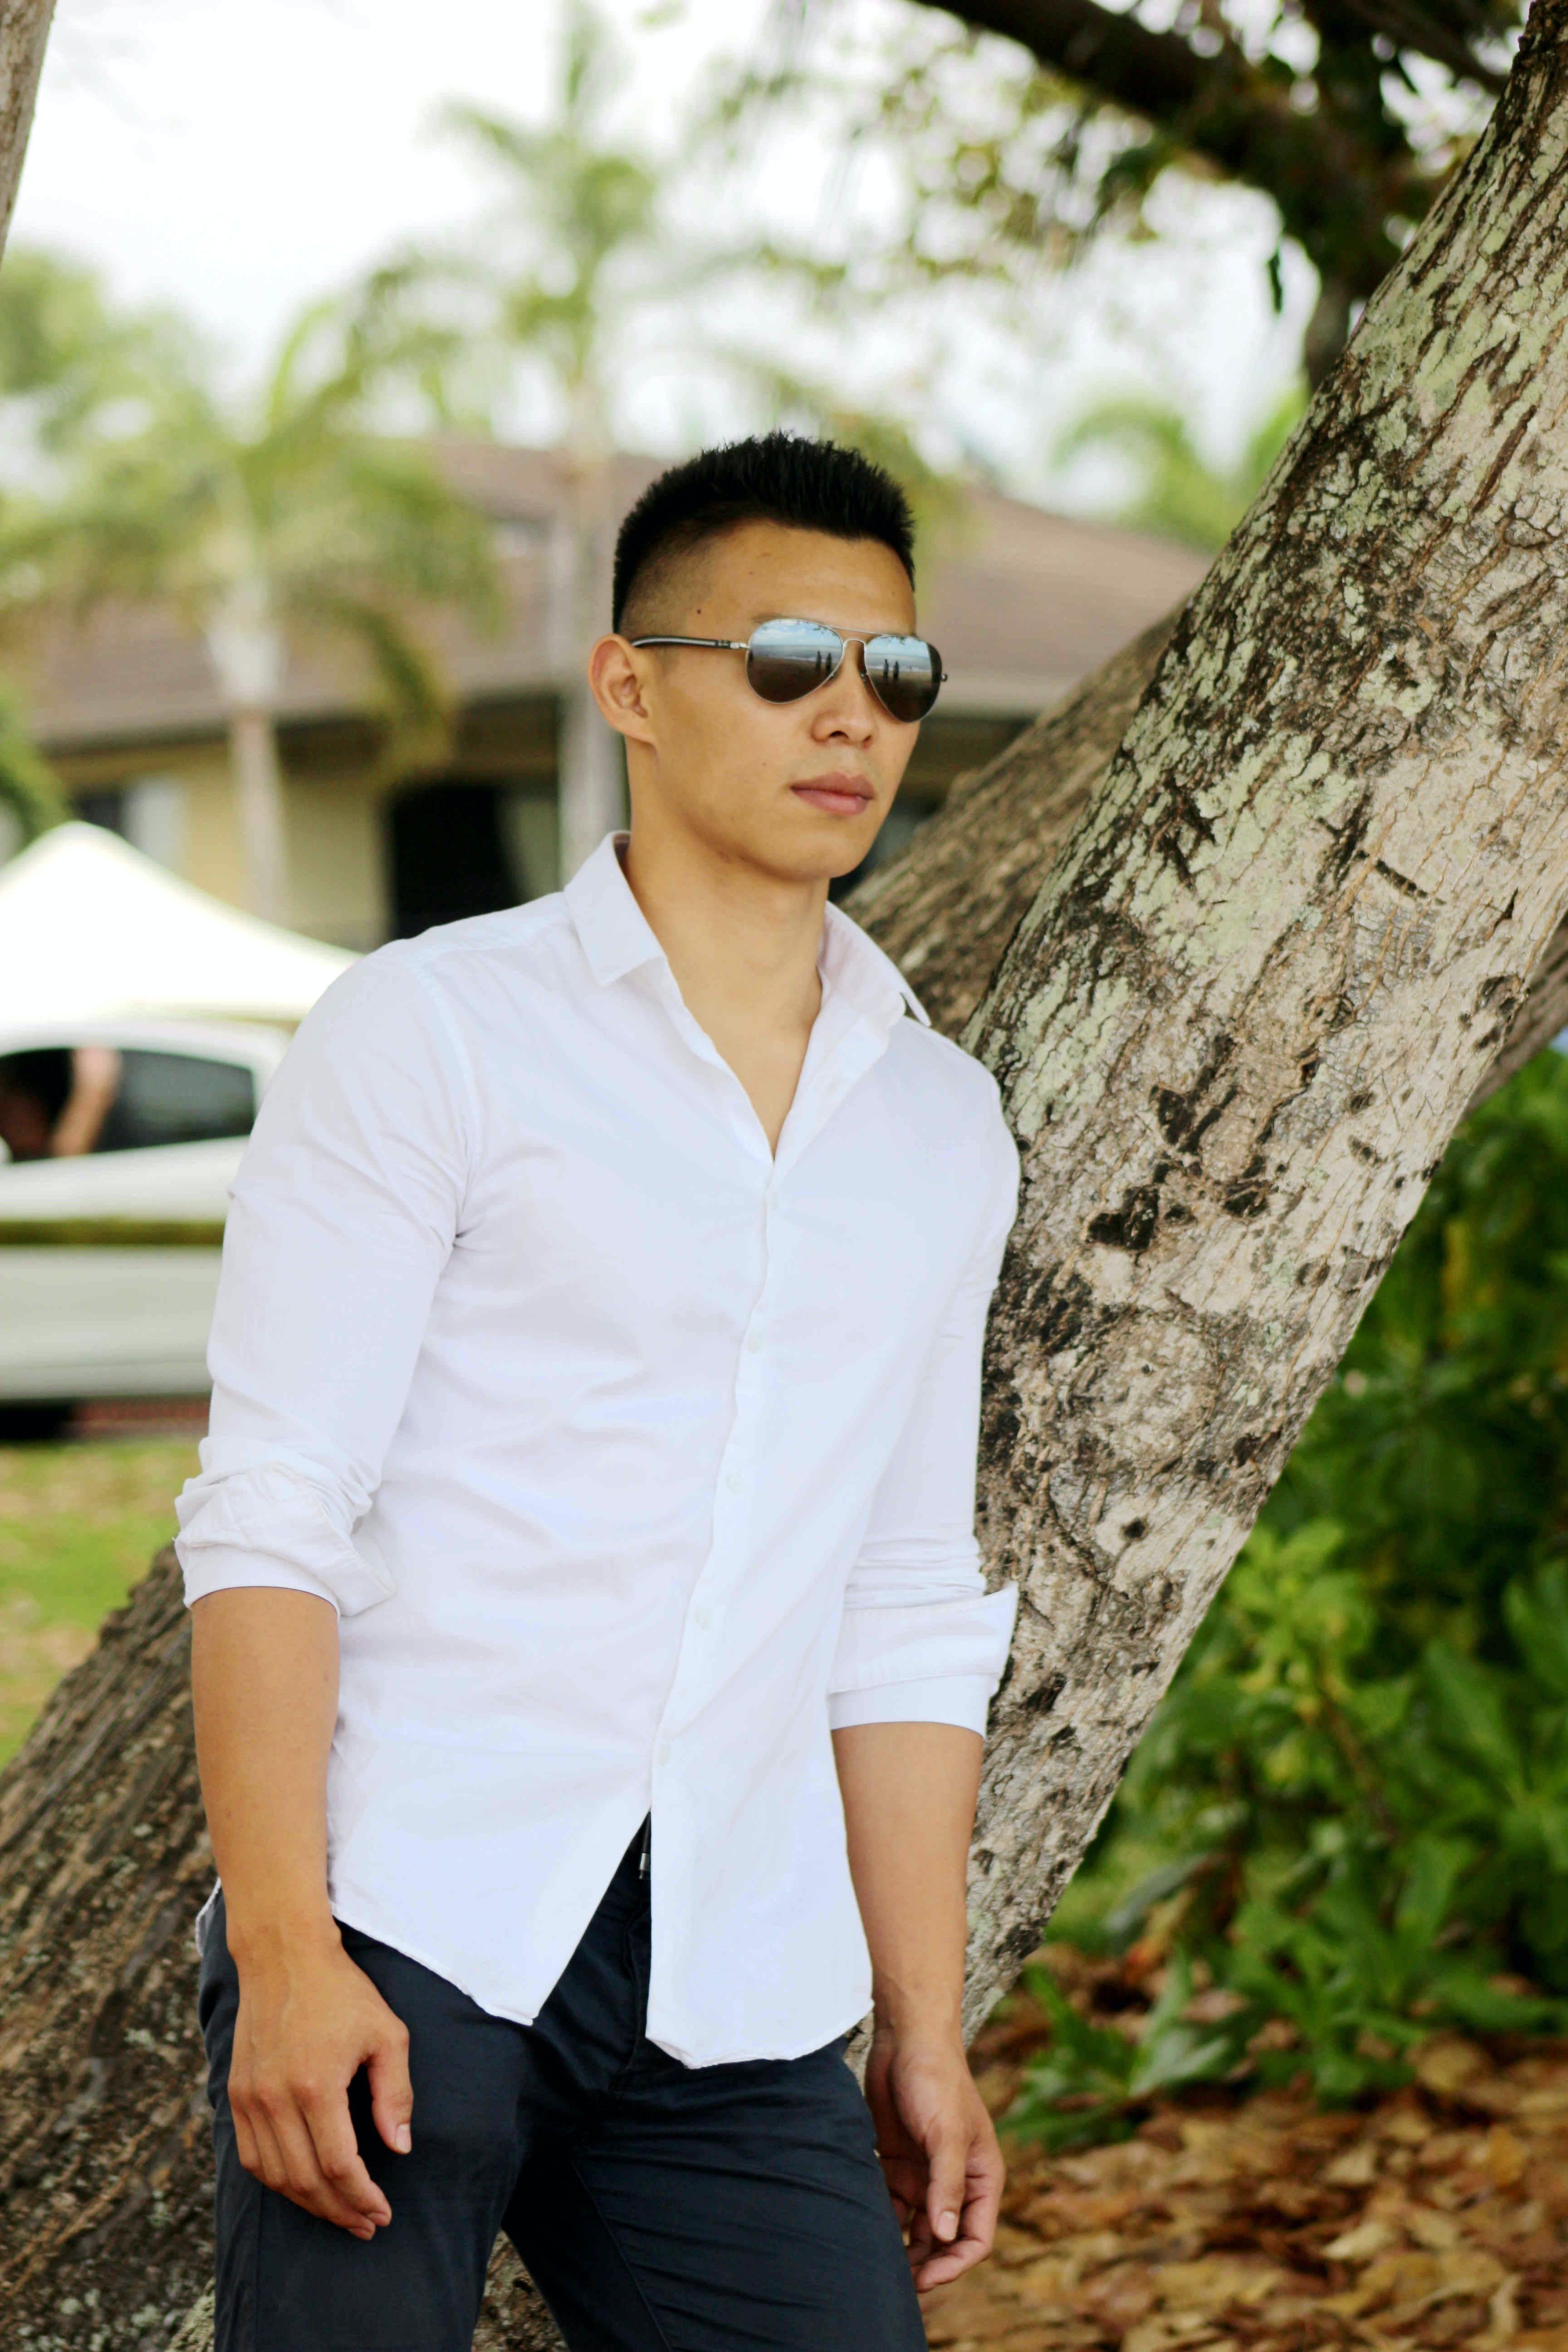 Free stock photo of male, sunglasses, white shir, young model